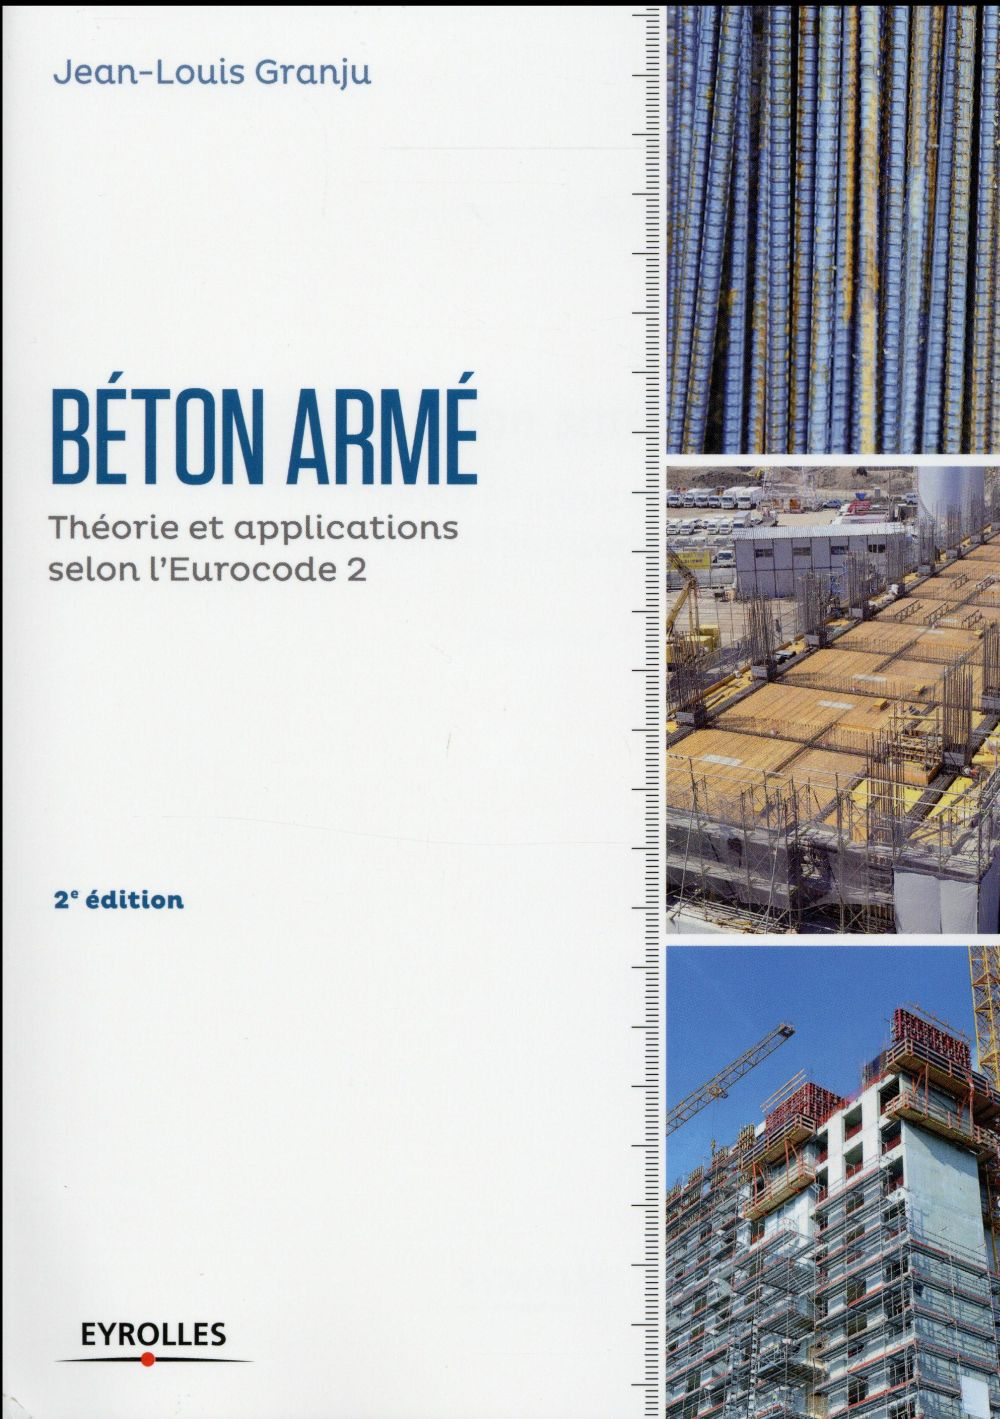 Introduction Au Beton Arme Theorie Et Applications Courantes Selon L'eurocode 2